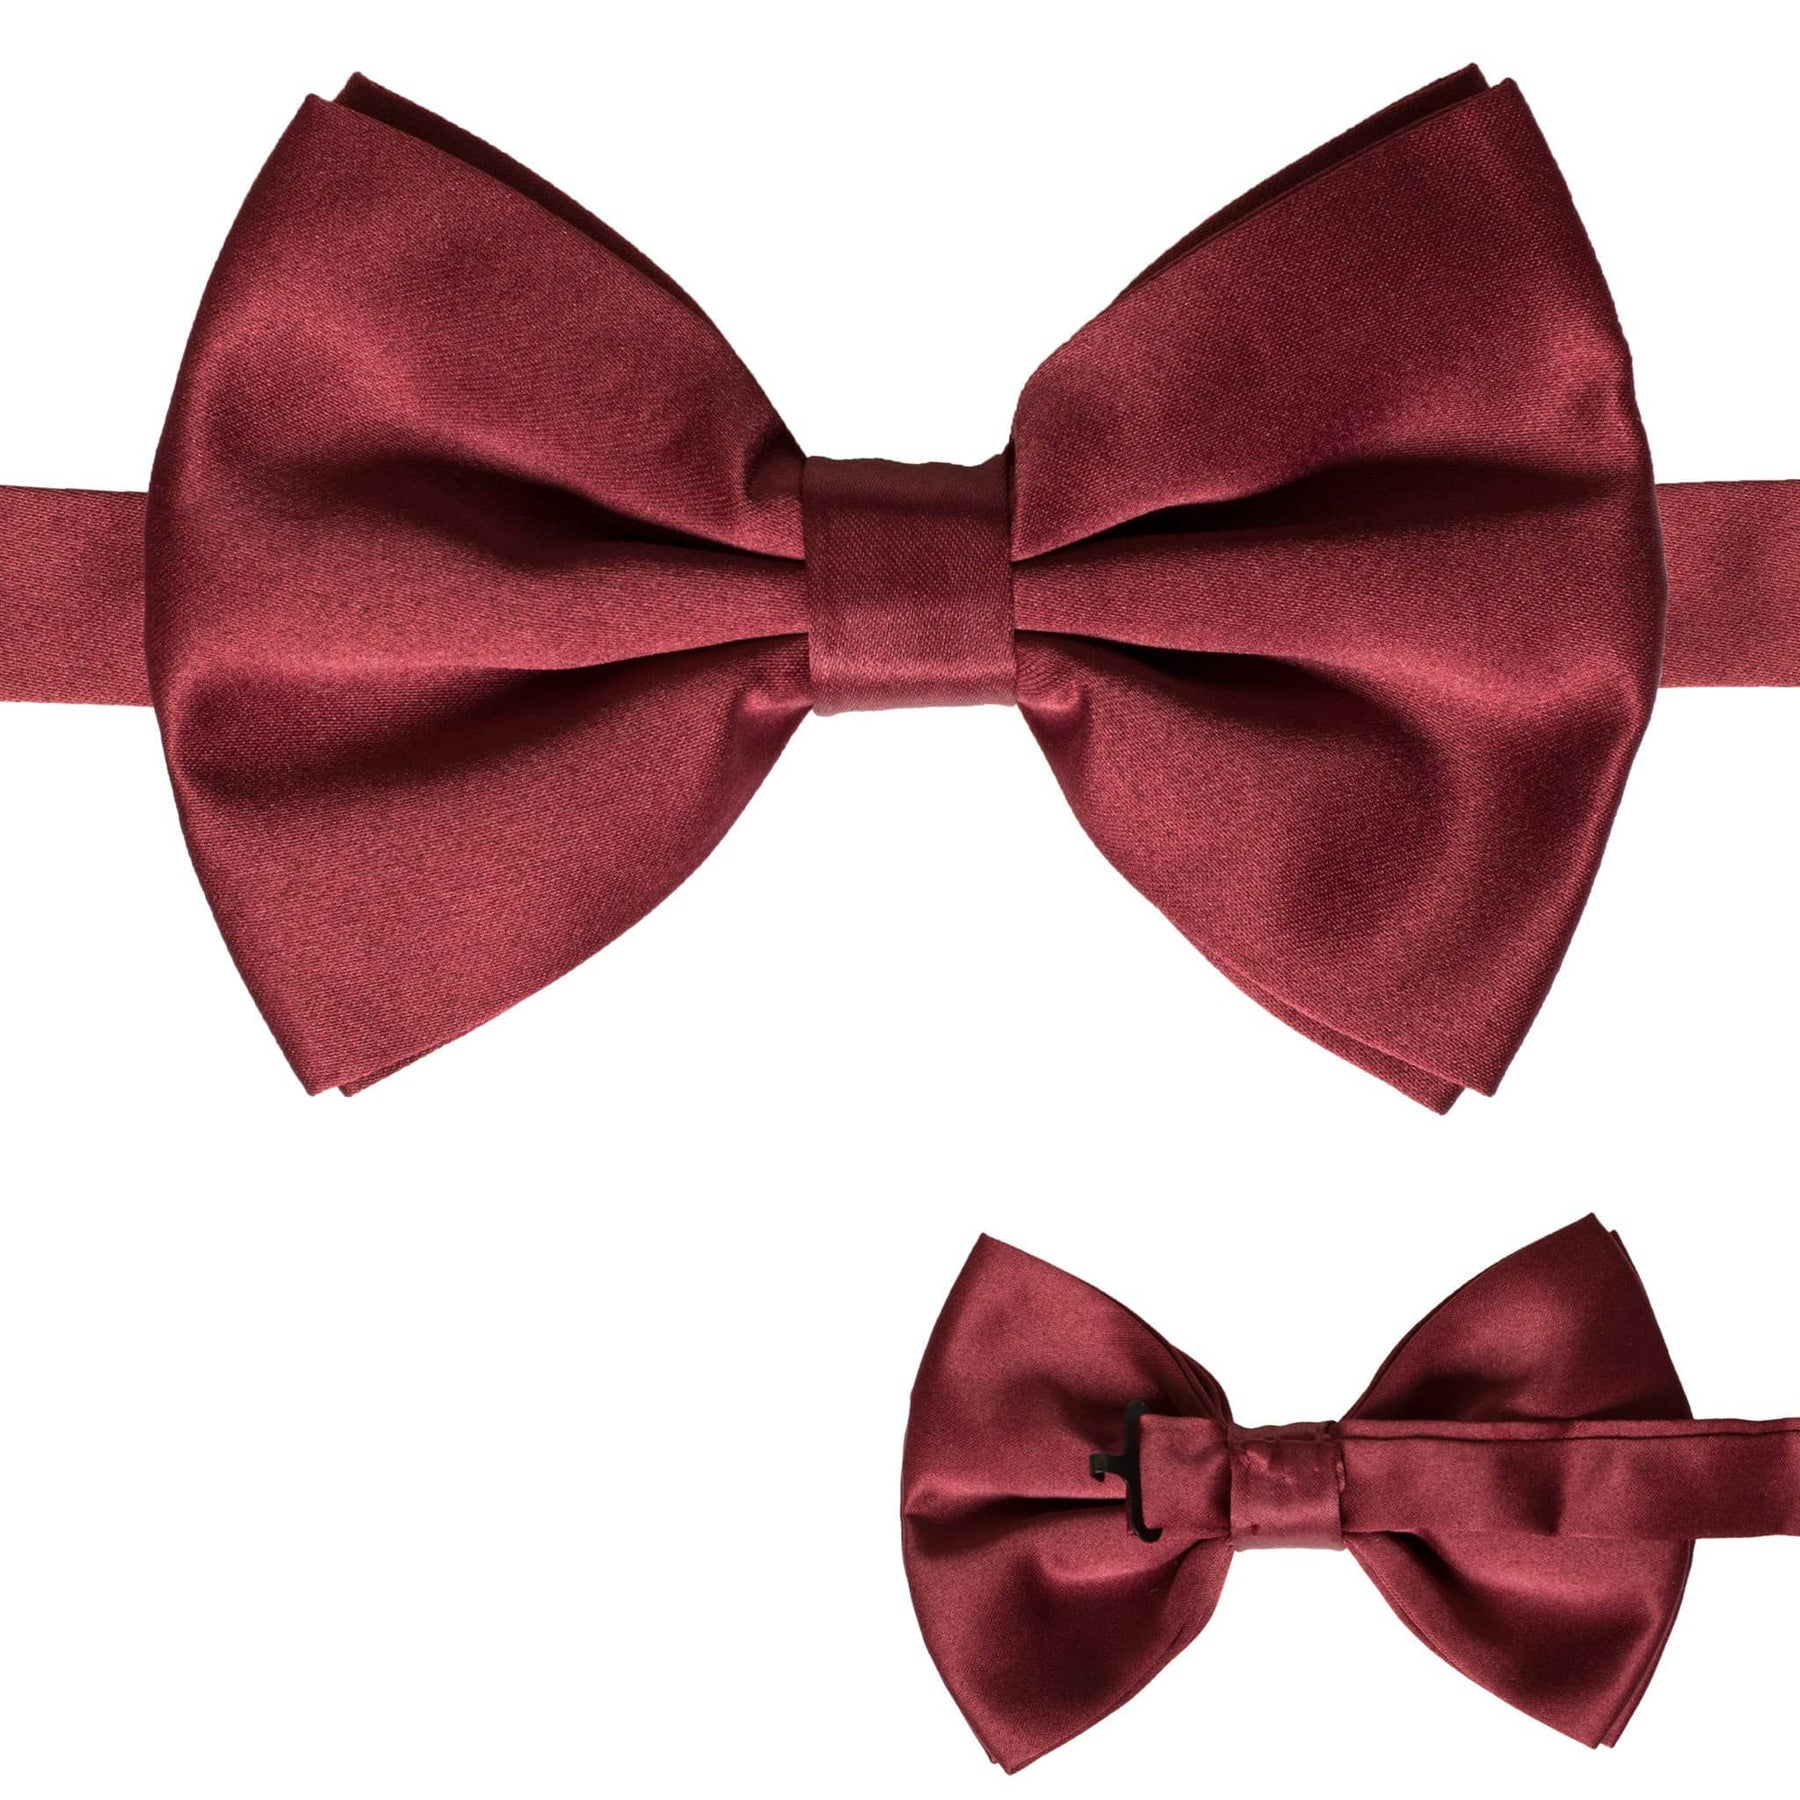 Boy/'s paisley pattern polyester bow tie Pink adjustable strap buckle closure for Formal Occasions